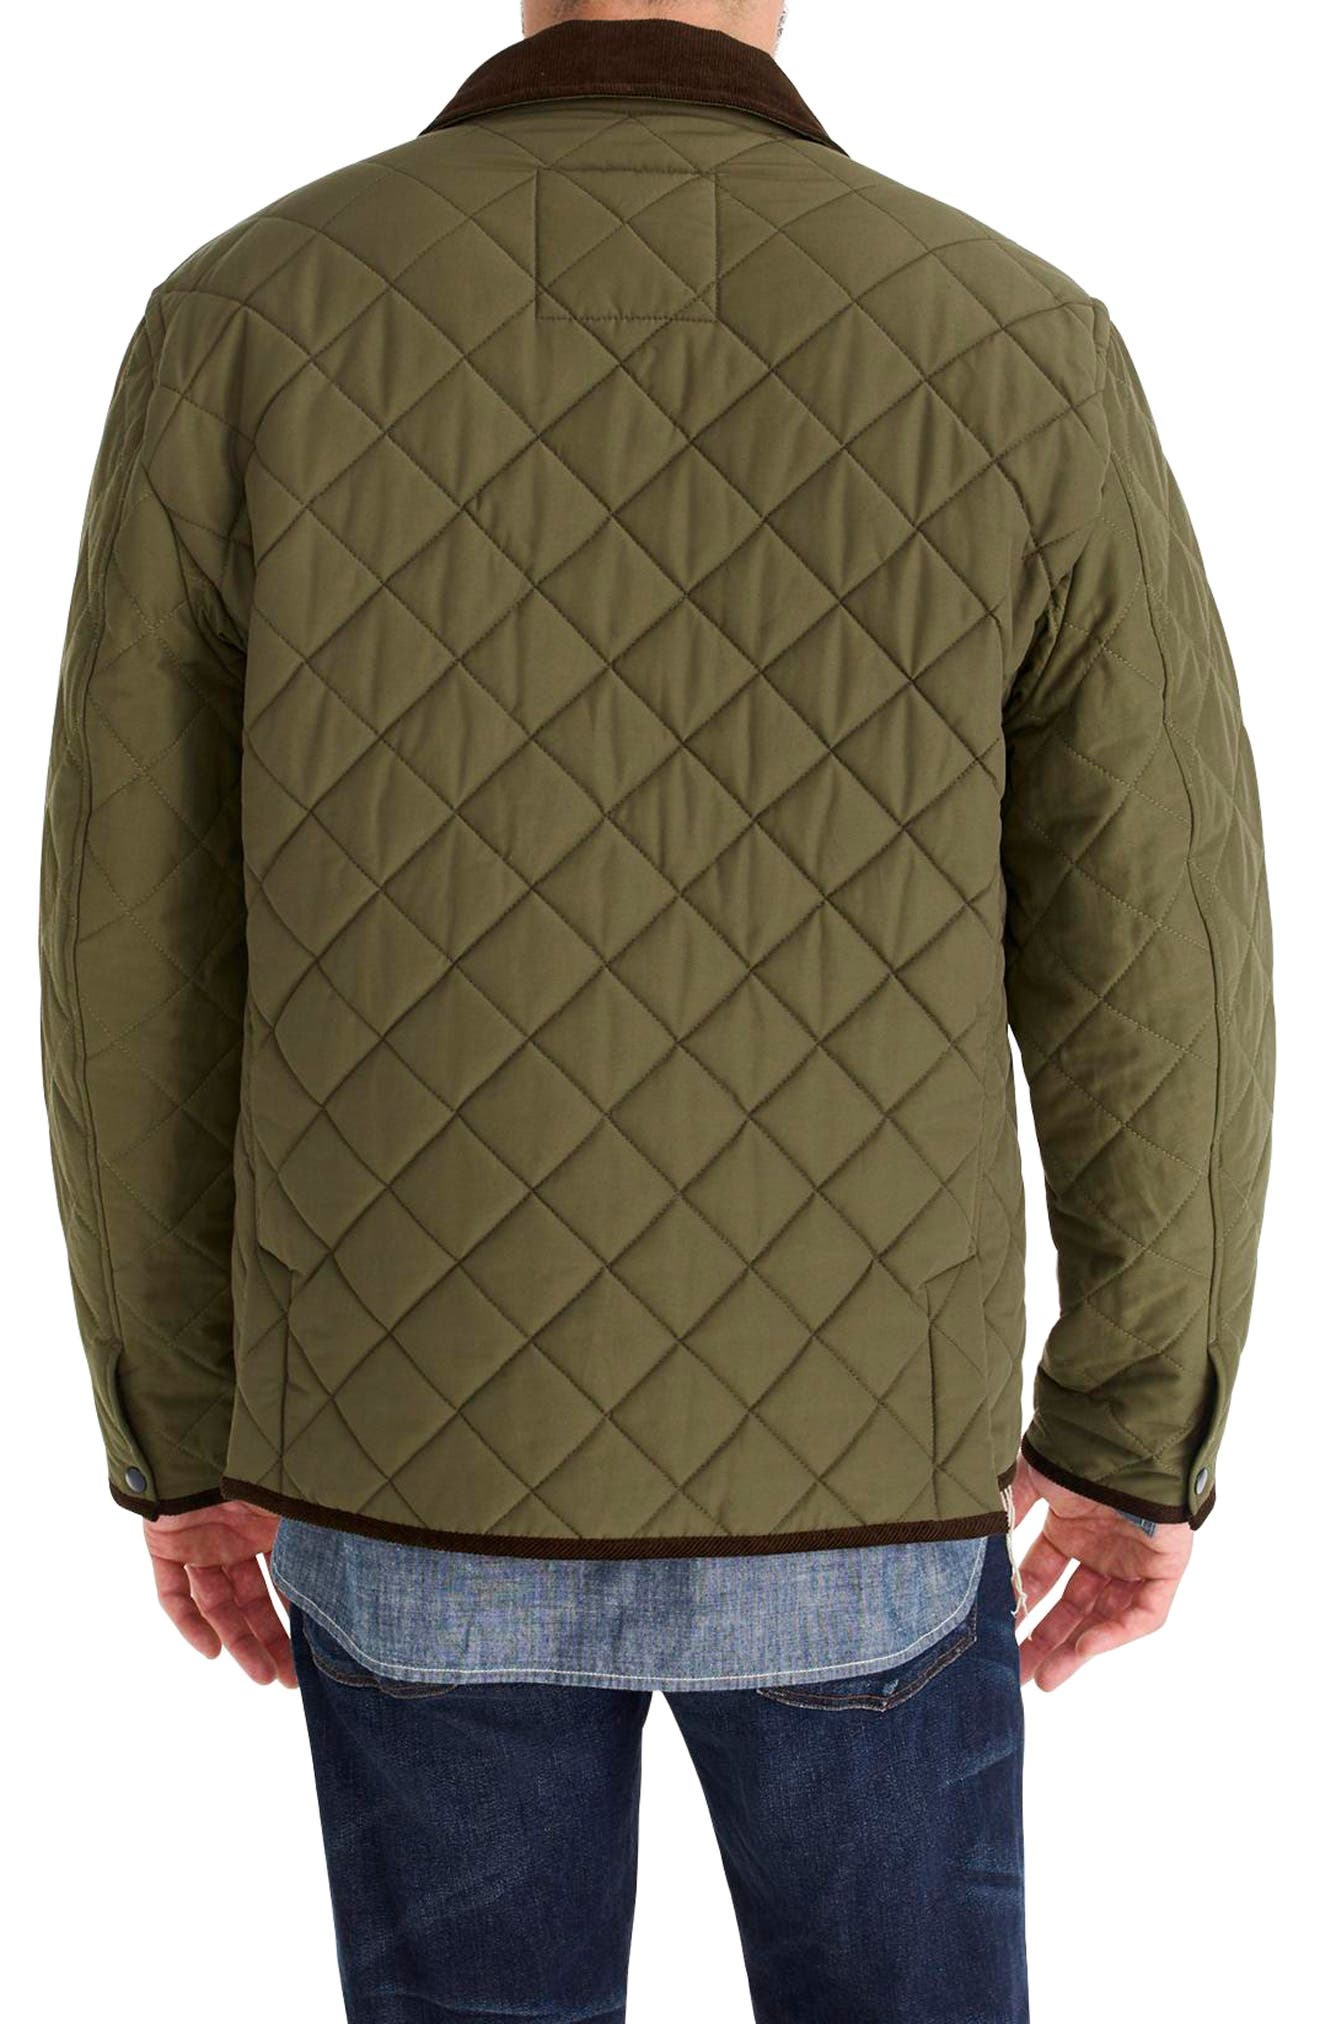 Sussex Quilted Jacket with Corduroy Collar,                             Alternate thumbnail 2, color,                             300